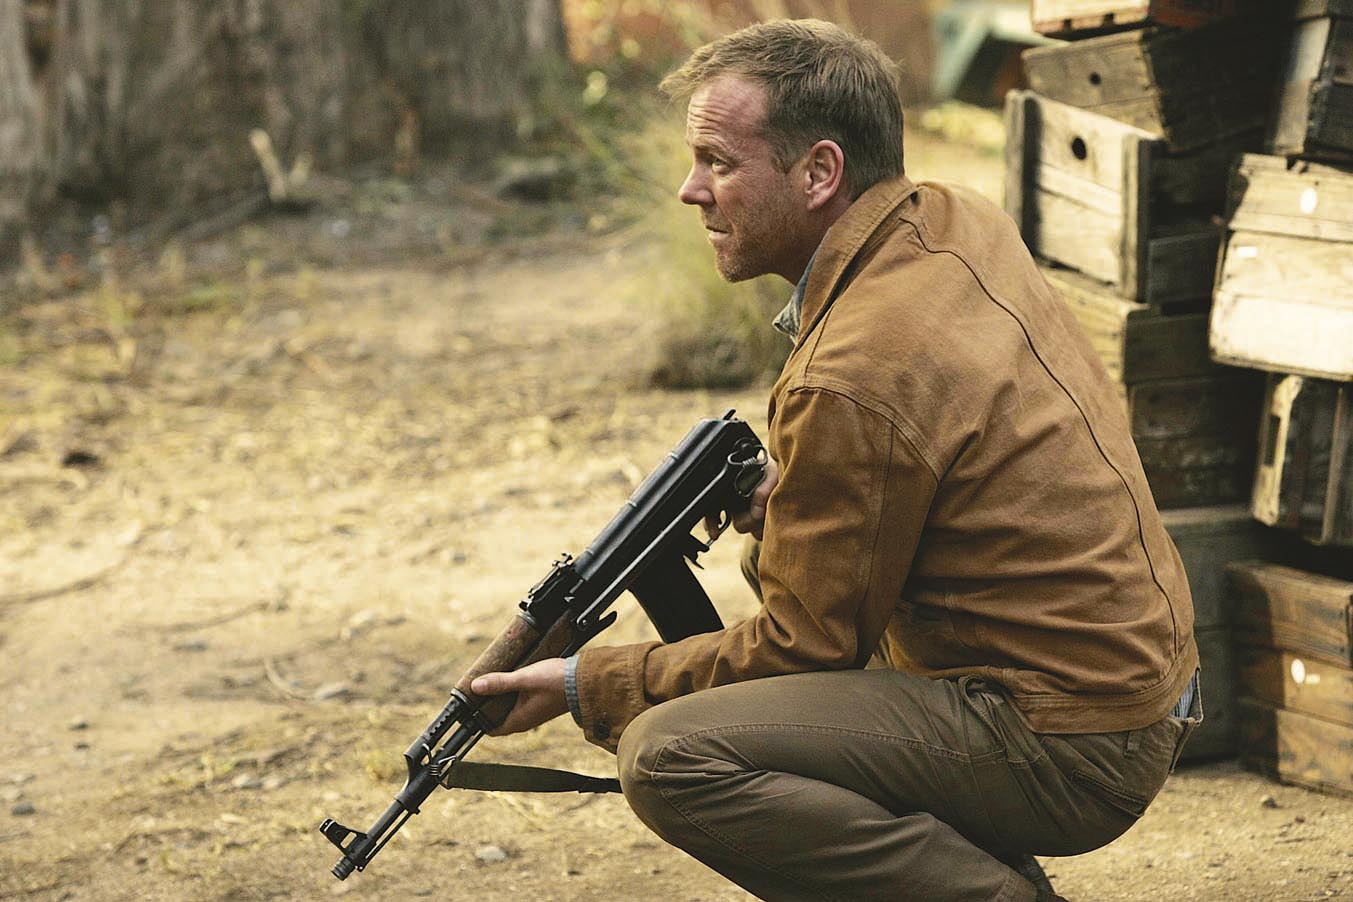 jack bauer 24 Anonymous1: Where can i find the rest of the nude cosplay?